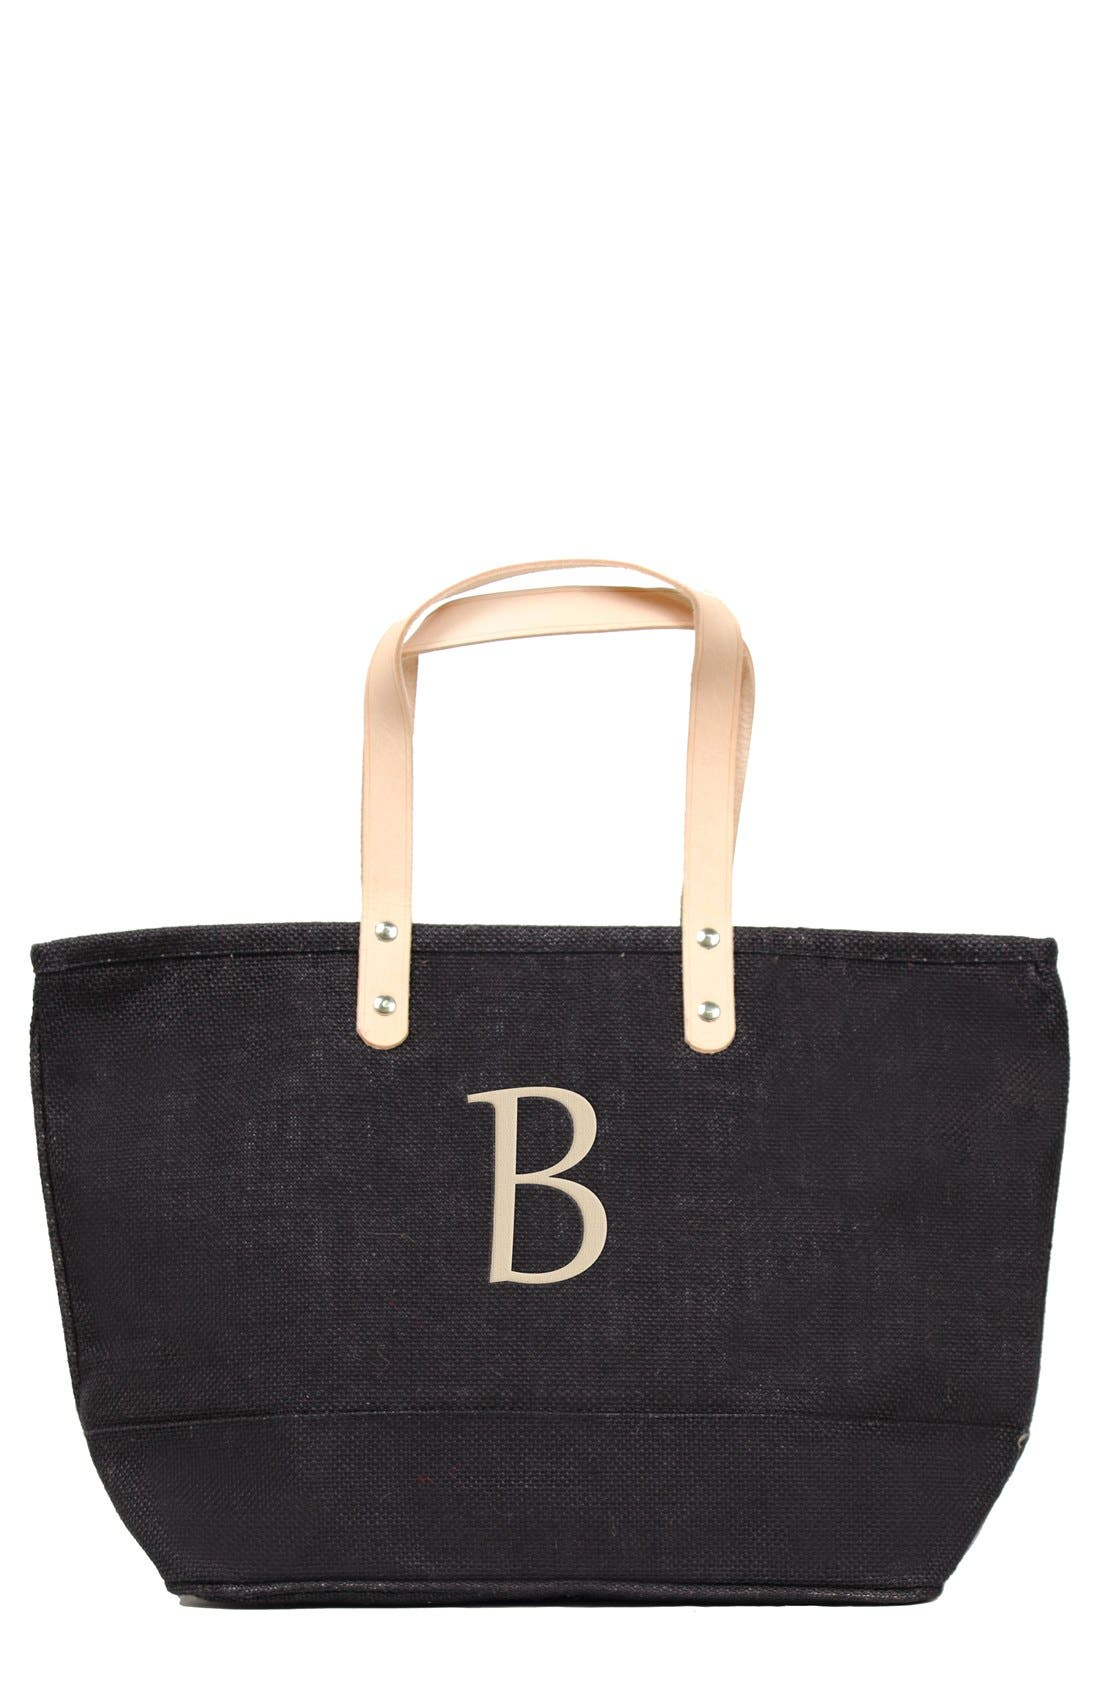 Alternate Image 1 Selected - Cathy's Concepts 'Nantucket' Monogram Jute Tote